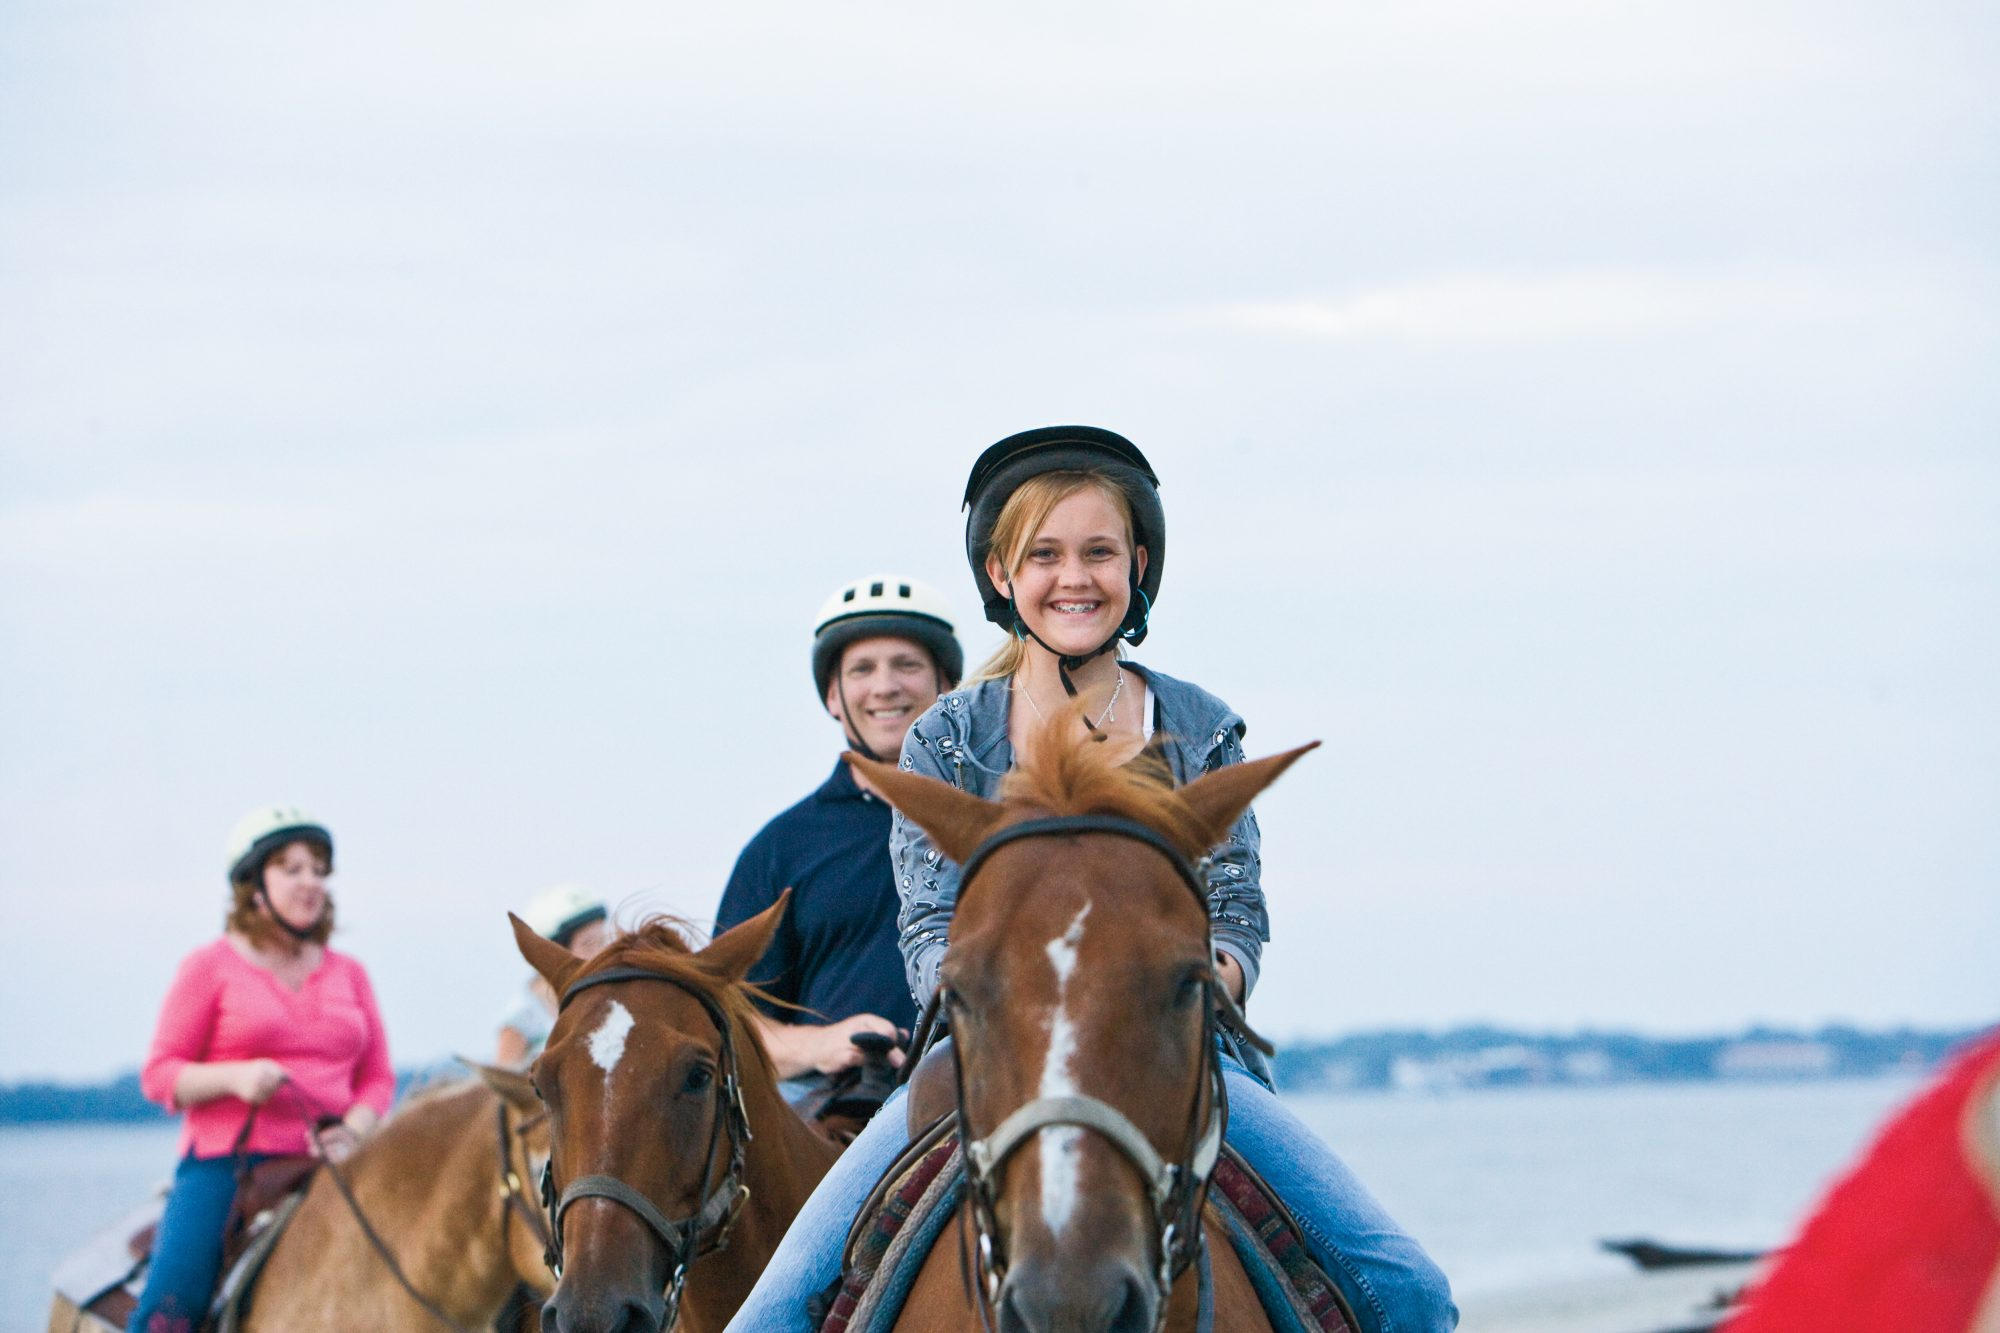 horseback riding on jekyll island beach